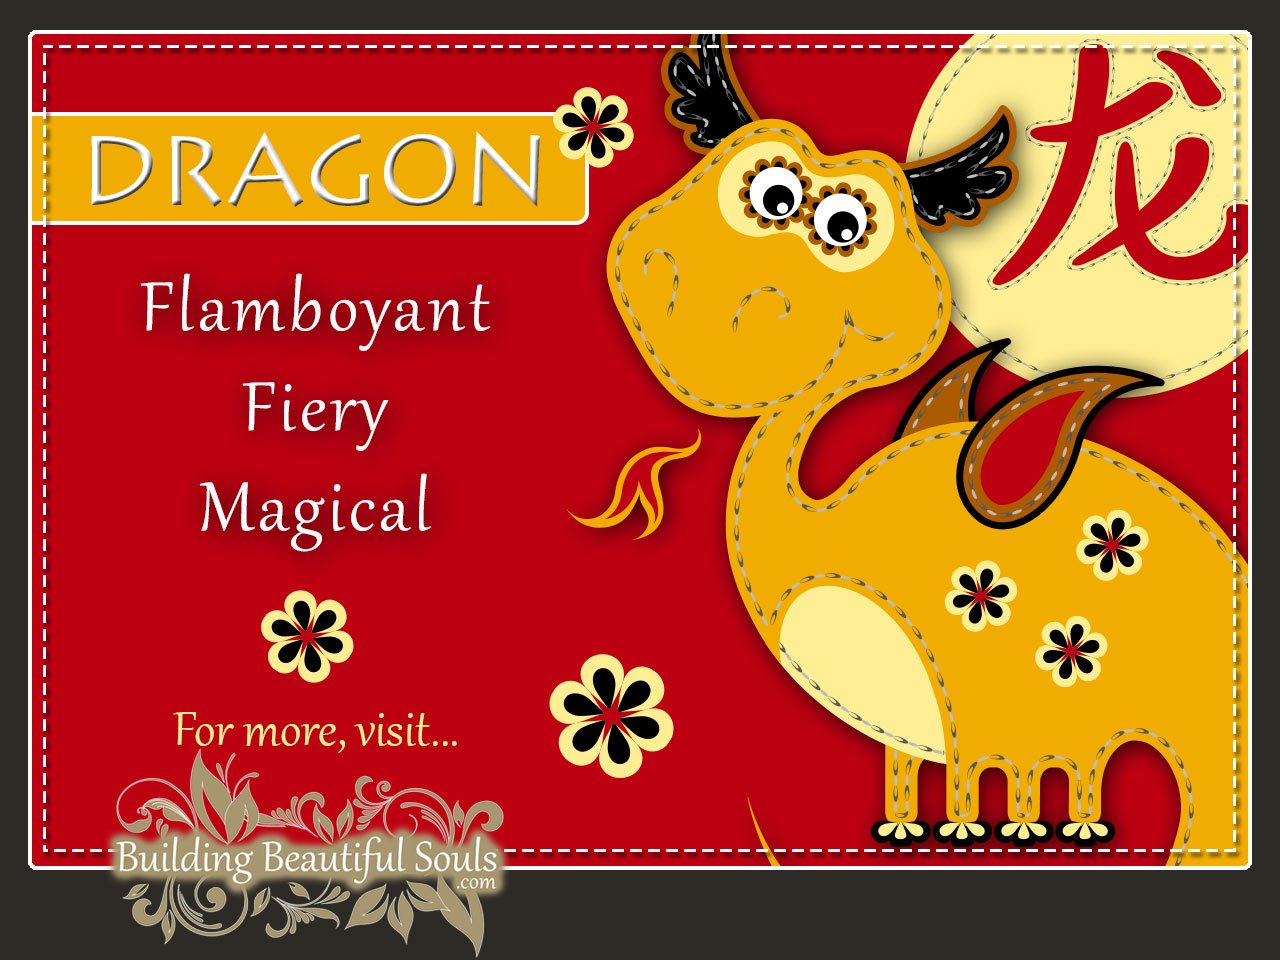 chinese zodiac dragon year of the dragon funny horoscopes funny zodiac signs. Black Bedroom Furniture Sets. Home Design Ideas